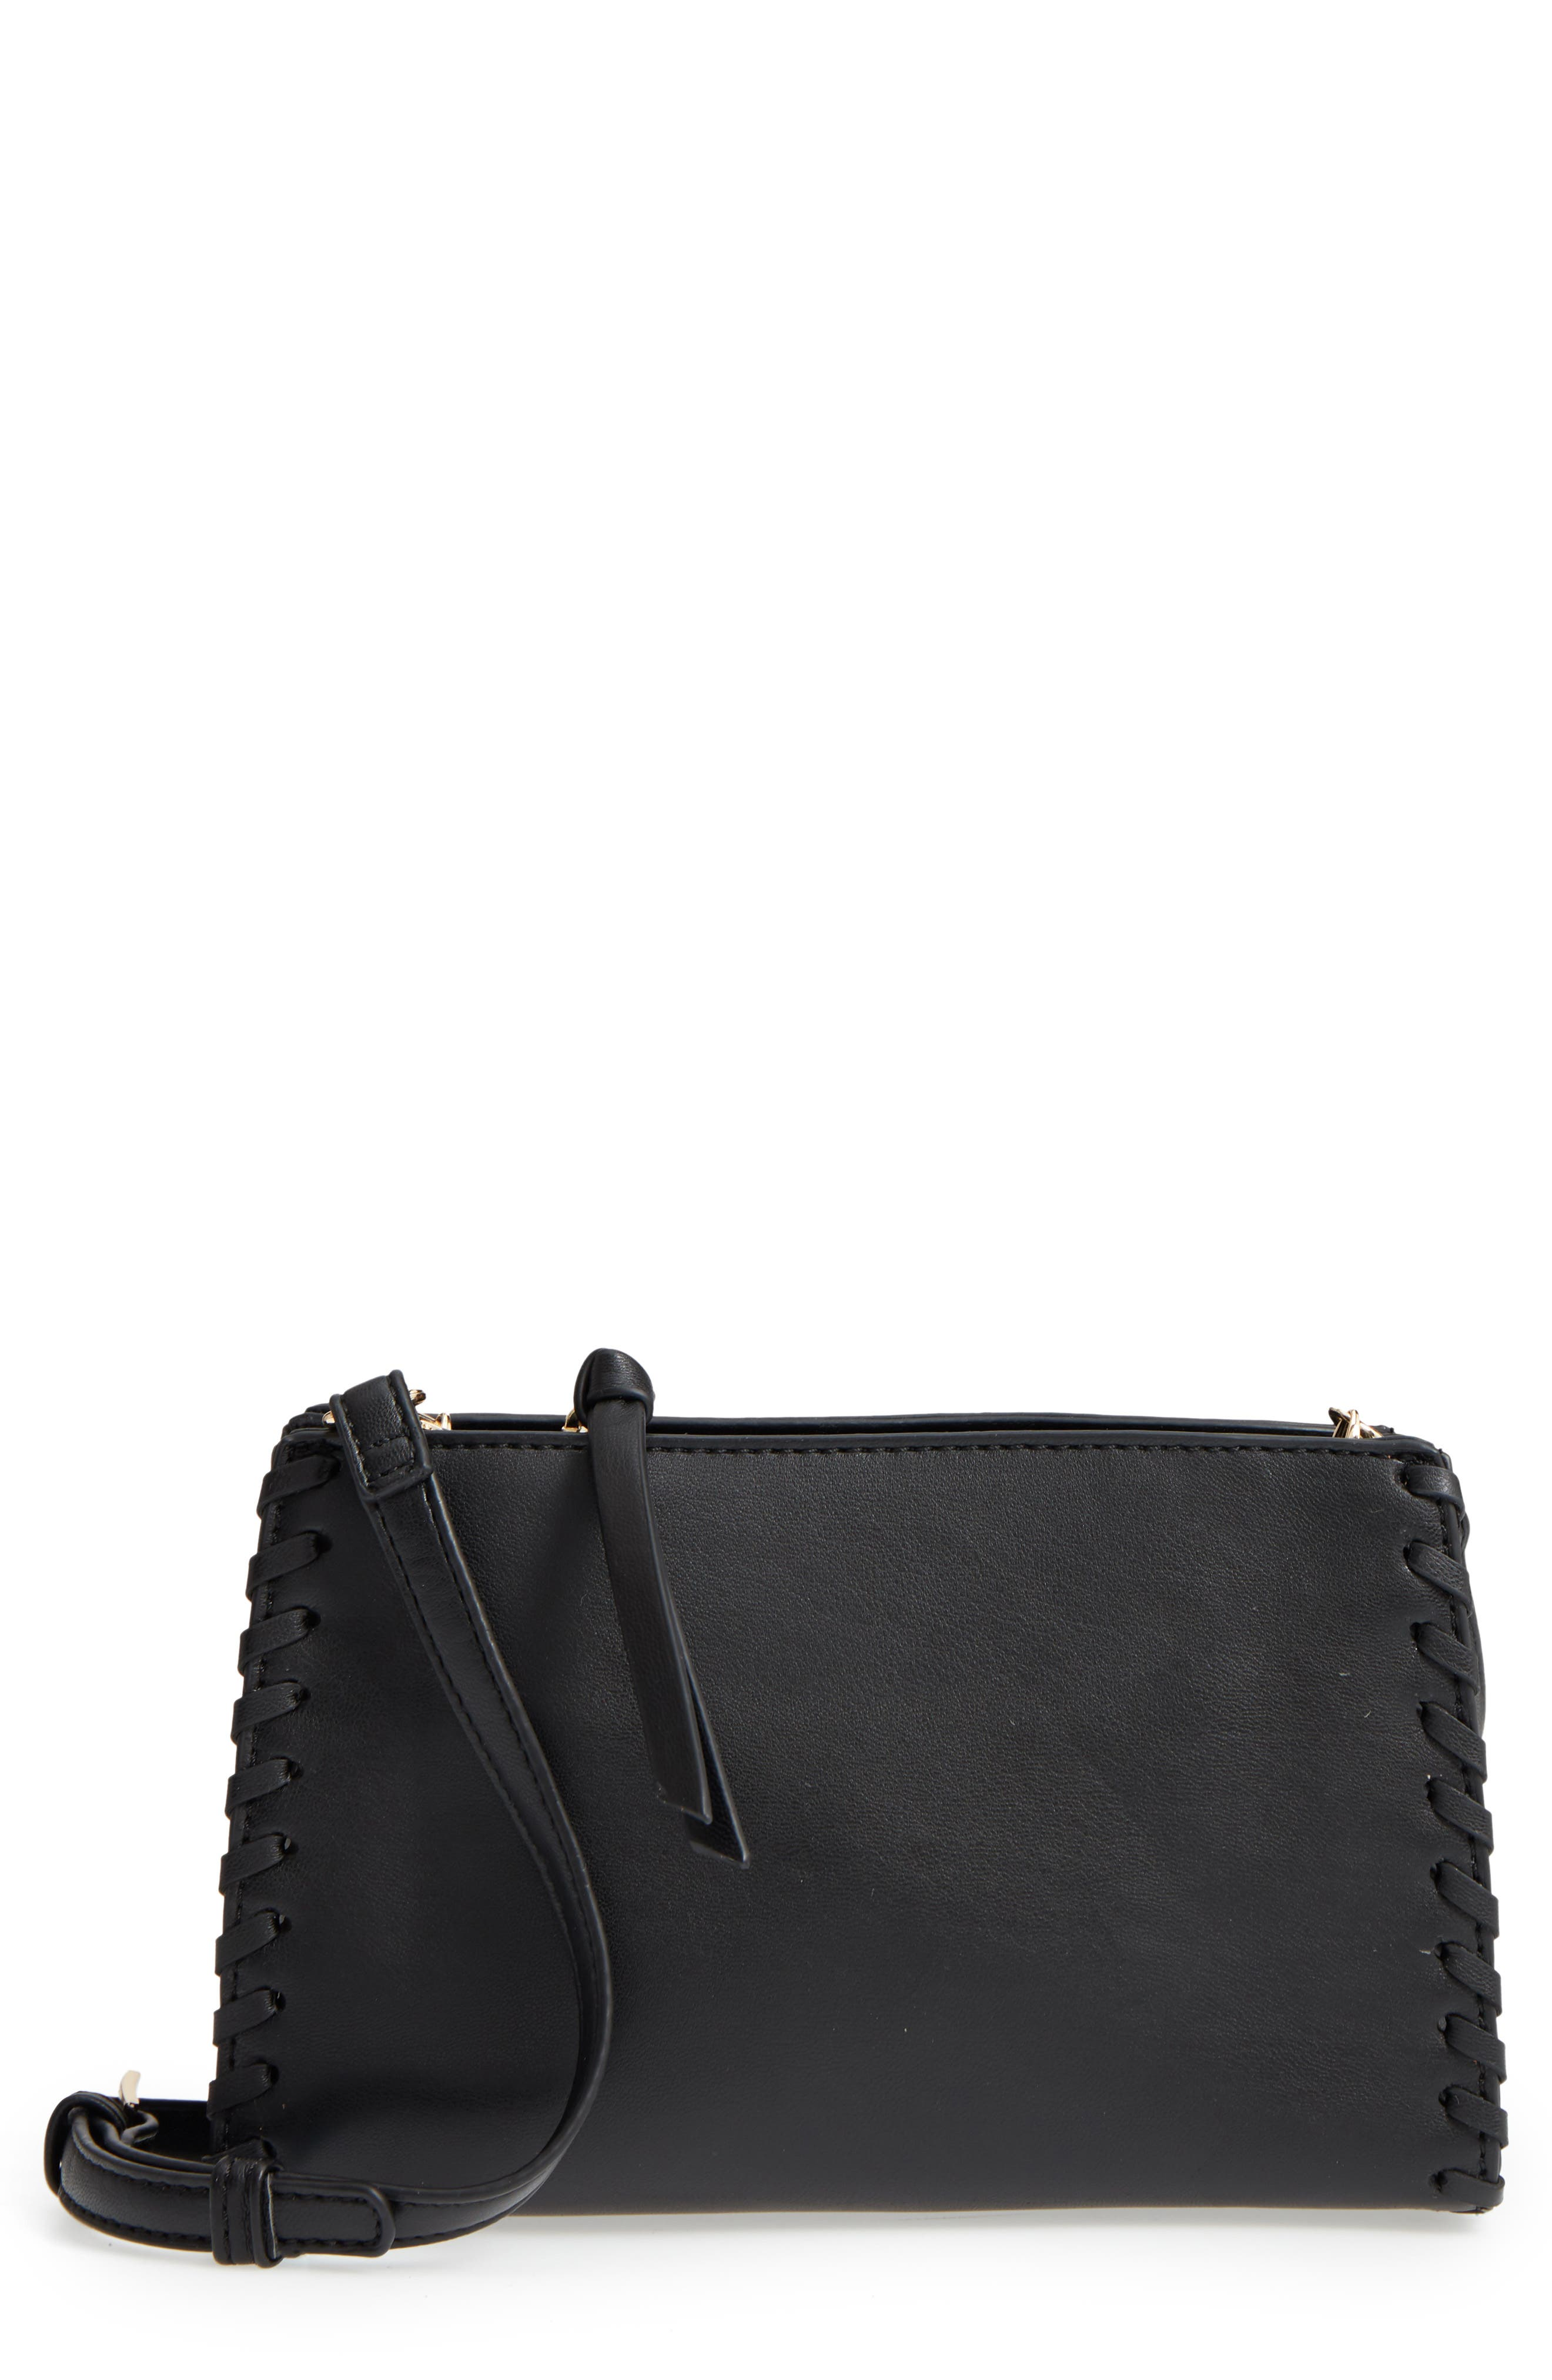 Cadence Whipstitch Faux Leather Crossbody Bag,                         Main,                         color, Black